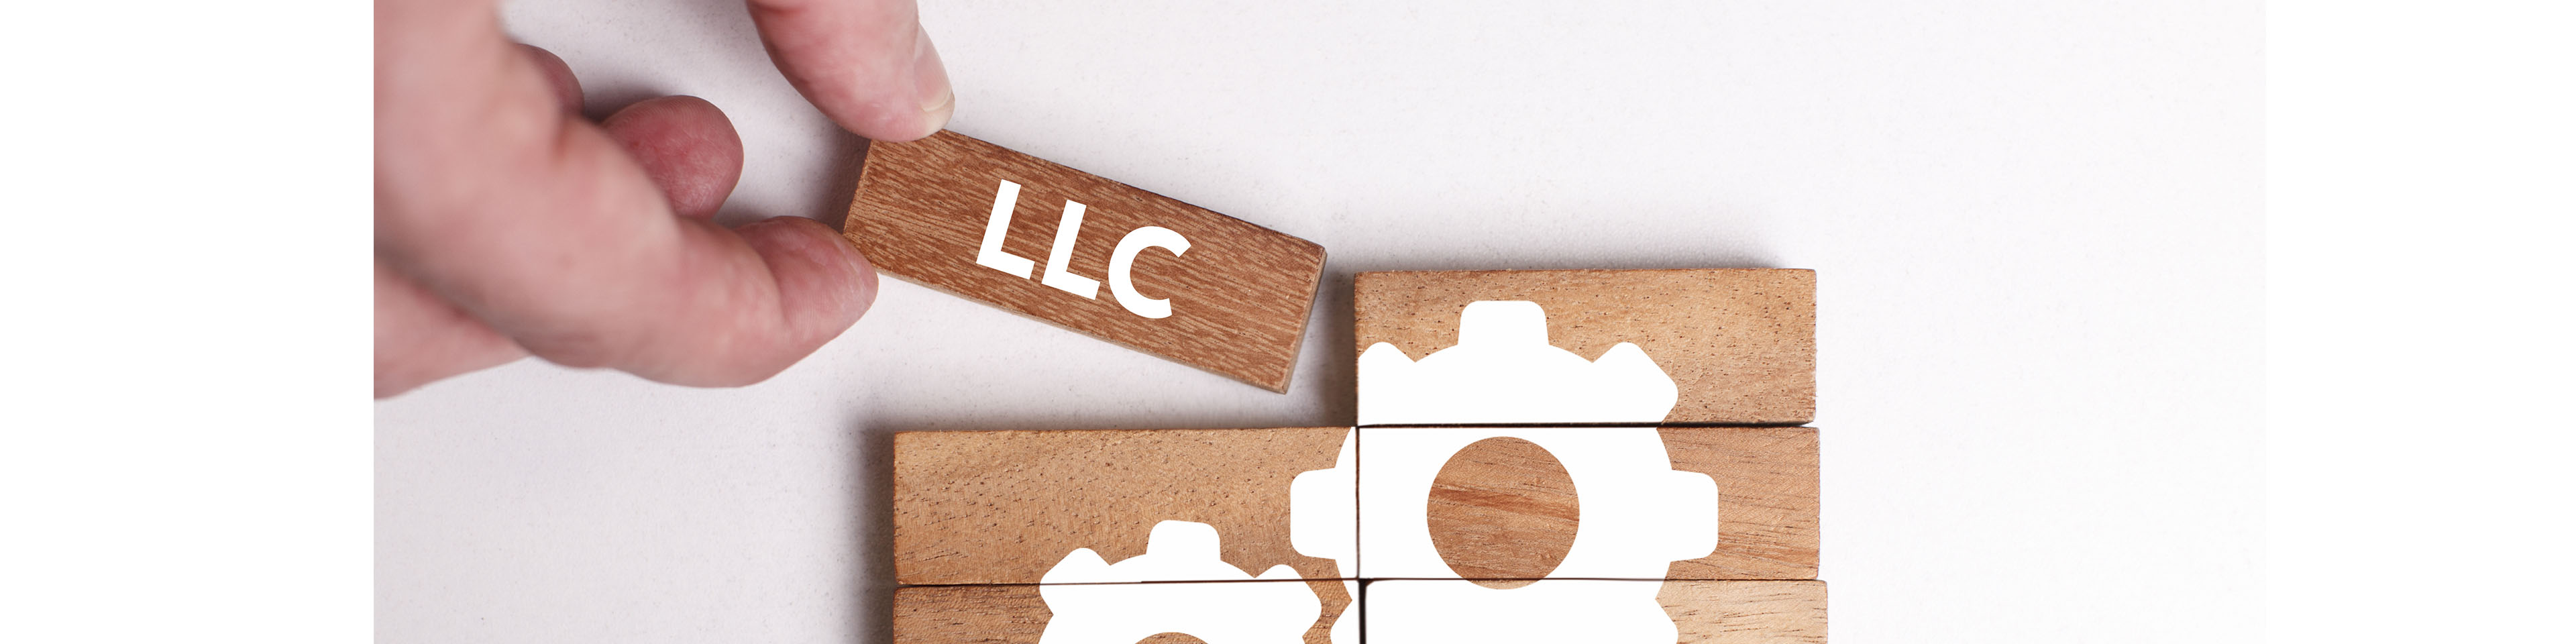 Why and How to Form an LLC: Essentials of the LLC Business Type